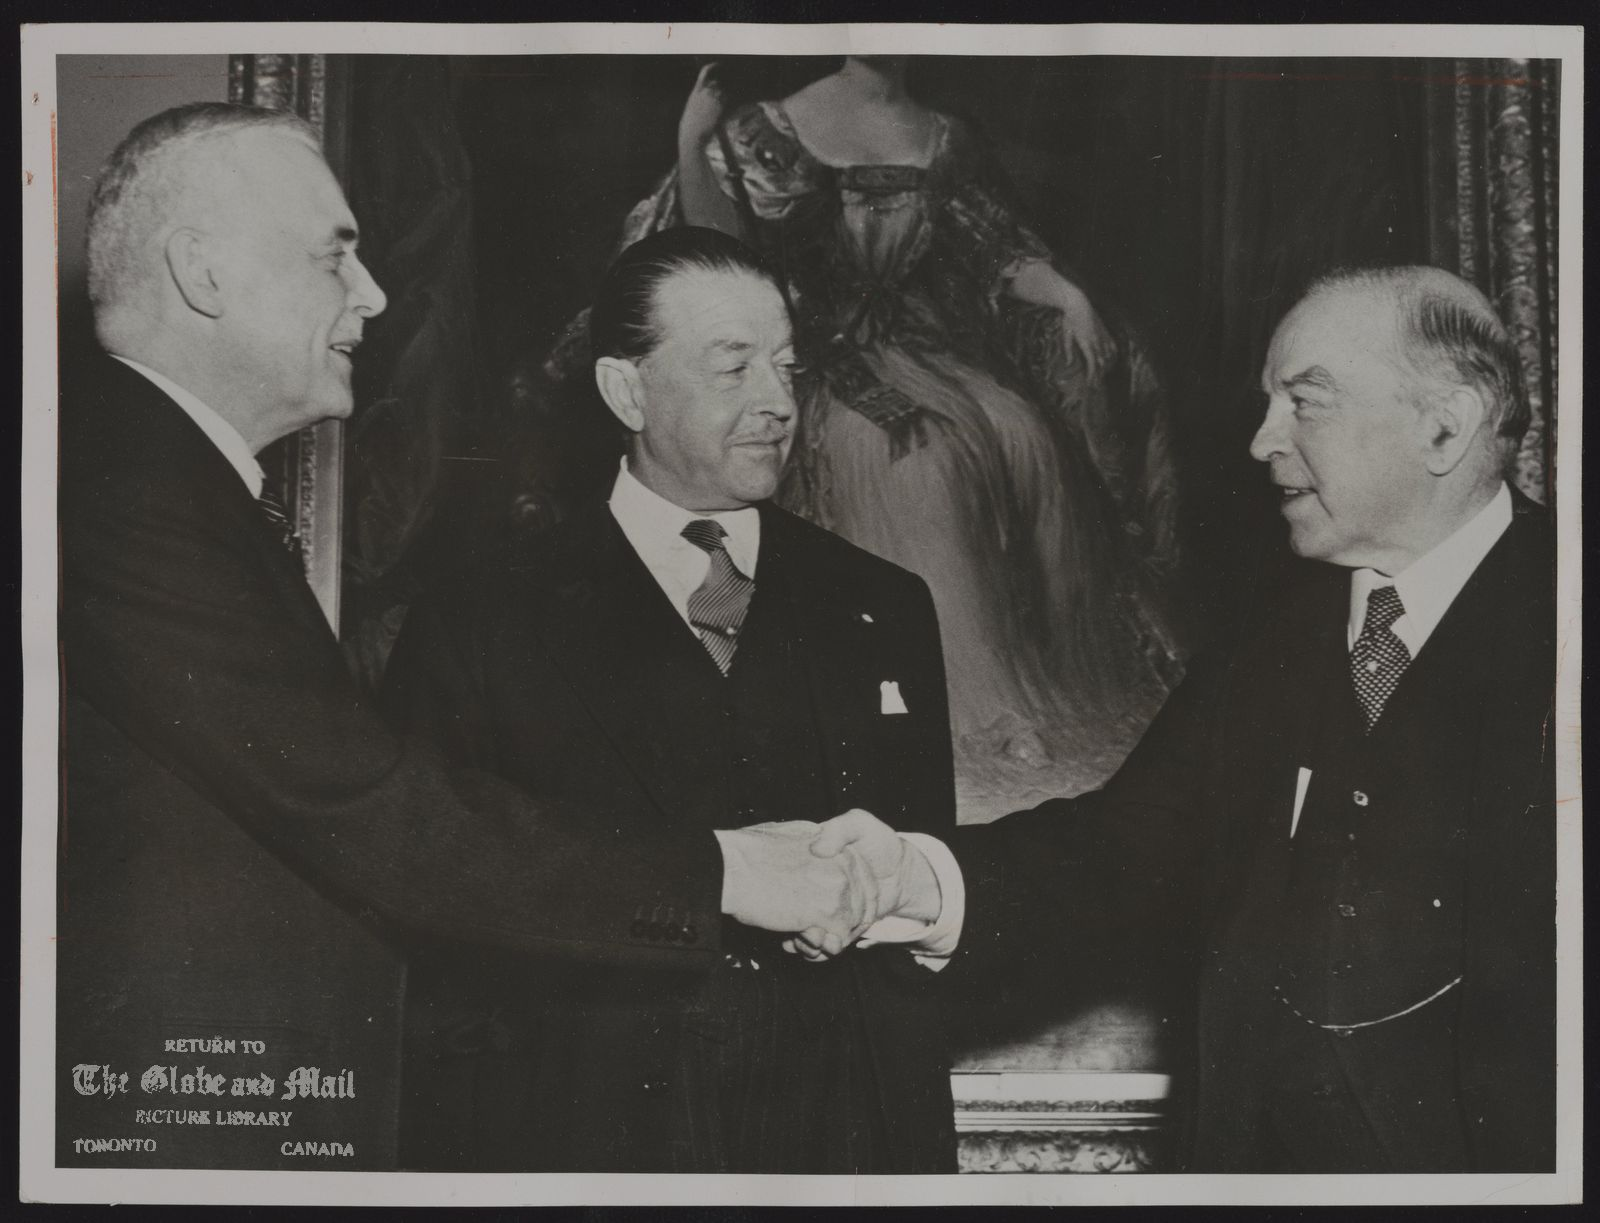 Louis ST. LAURENT FOR USE ANYTIME BUT PRIMARILY IN EVENT OP DEATH (CPT 11—Jan. 11) LEADERSHIP CHANGES HANDS—This was the scene Nov. 15, 1948, when Prime Minister William Lyon Mackenzie King (right) handed over the Liberal leadership, and thus the prime minister's office, to External Affairs Minister St. Laurent. Governor-General Viscount Alexander (centre) held up the official resignation of Mr. King for about five hours to avoid a break in government continuity. Mr. St. Laurent was then 66.